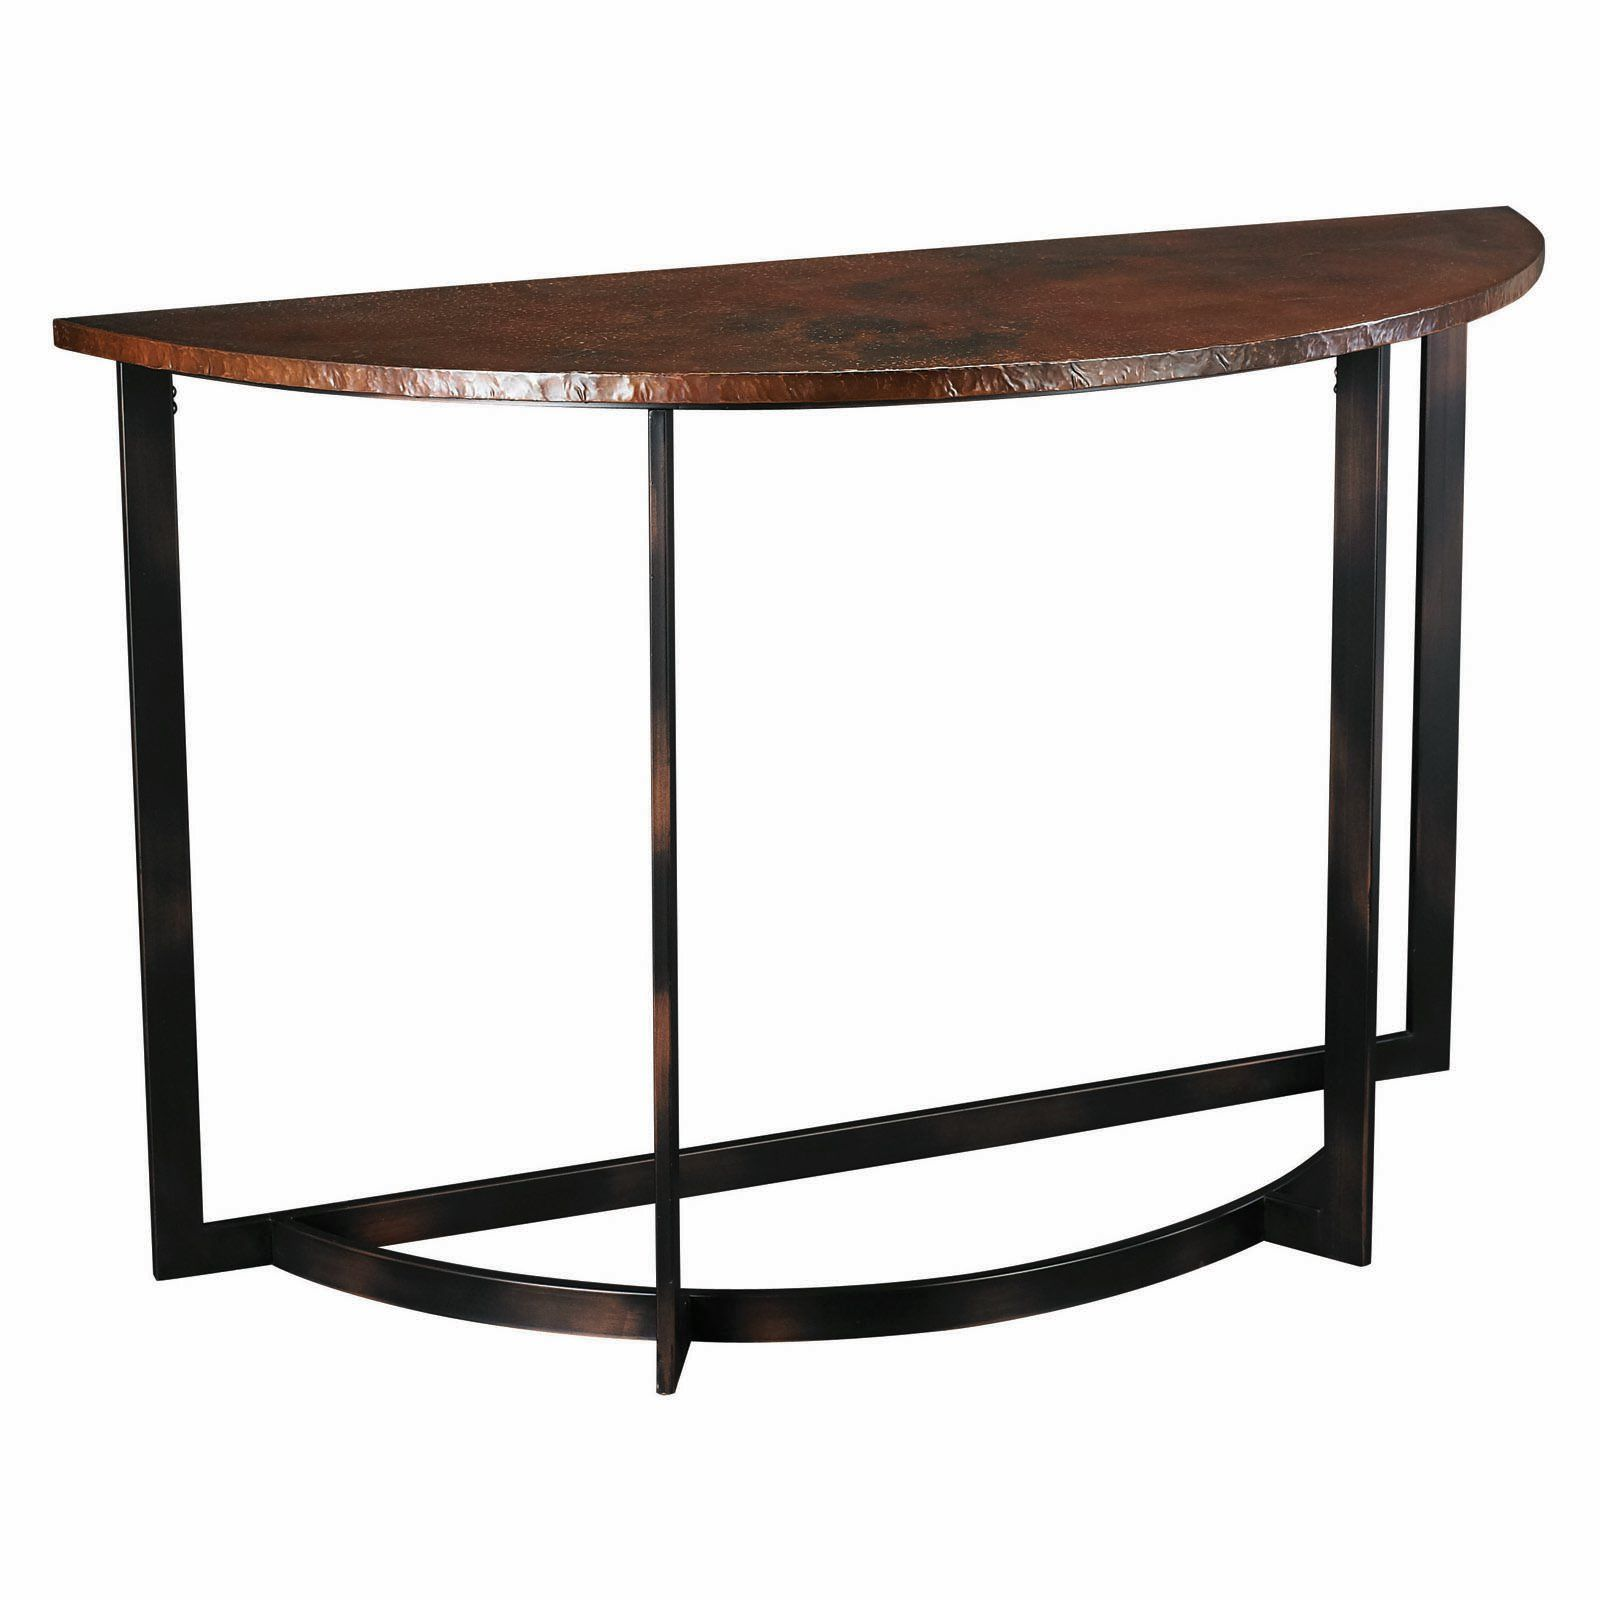 Hammary Nueva Crescent Console Table Www Hayneedle Com Traditional Console Tables Console Table Table [ 1600 x 1600 Pixel ]